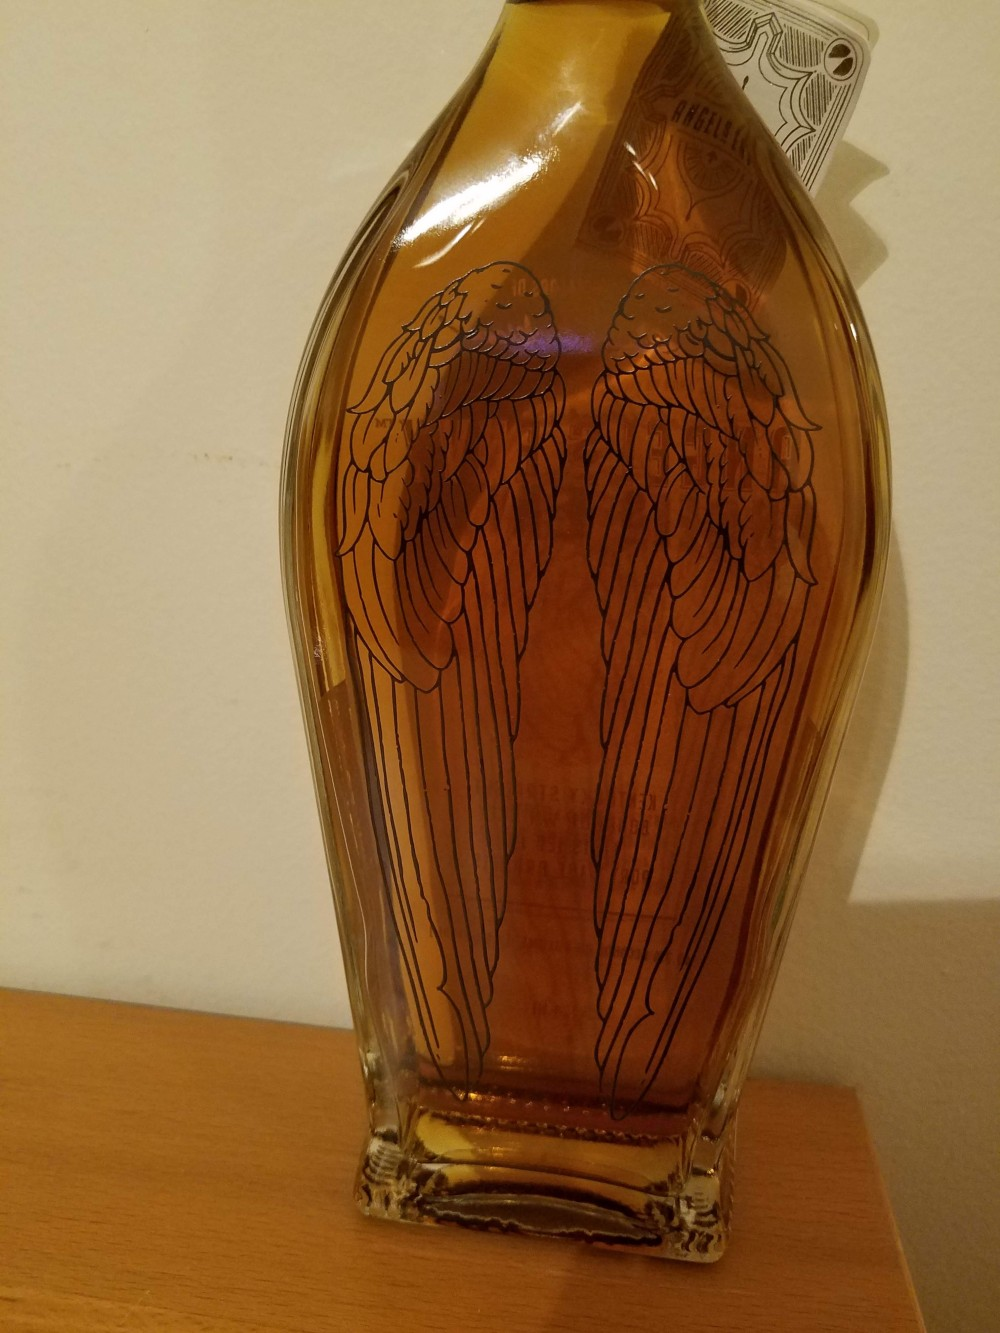 The Back of an Angel's Envy Bottle